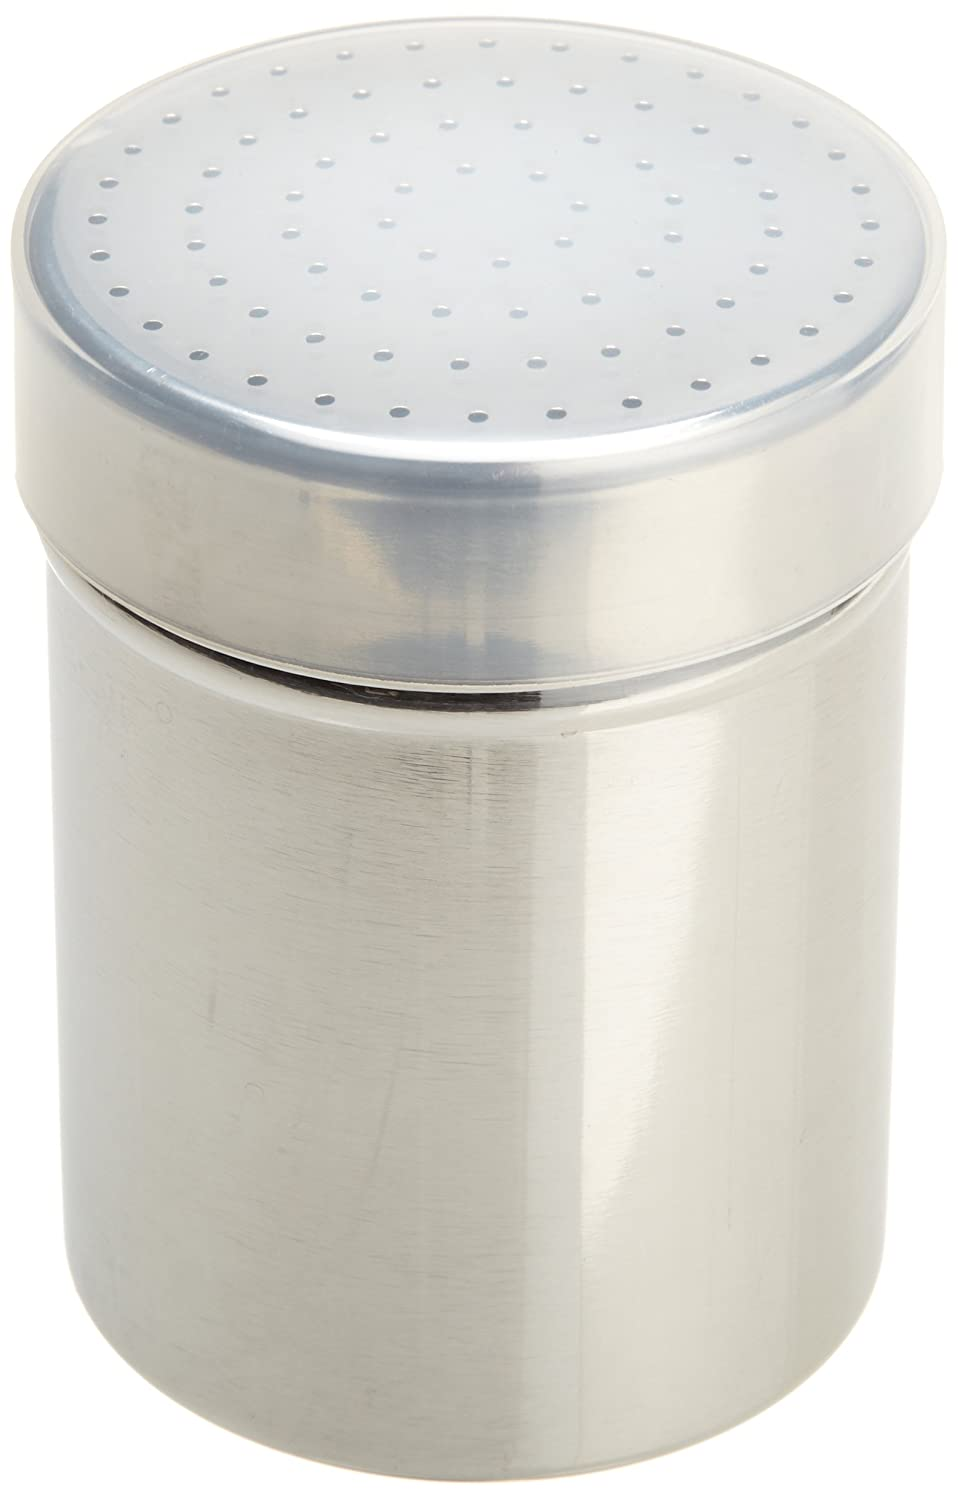 Ateco 1349 10-Ounce Shaker with Fine Holes